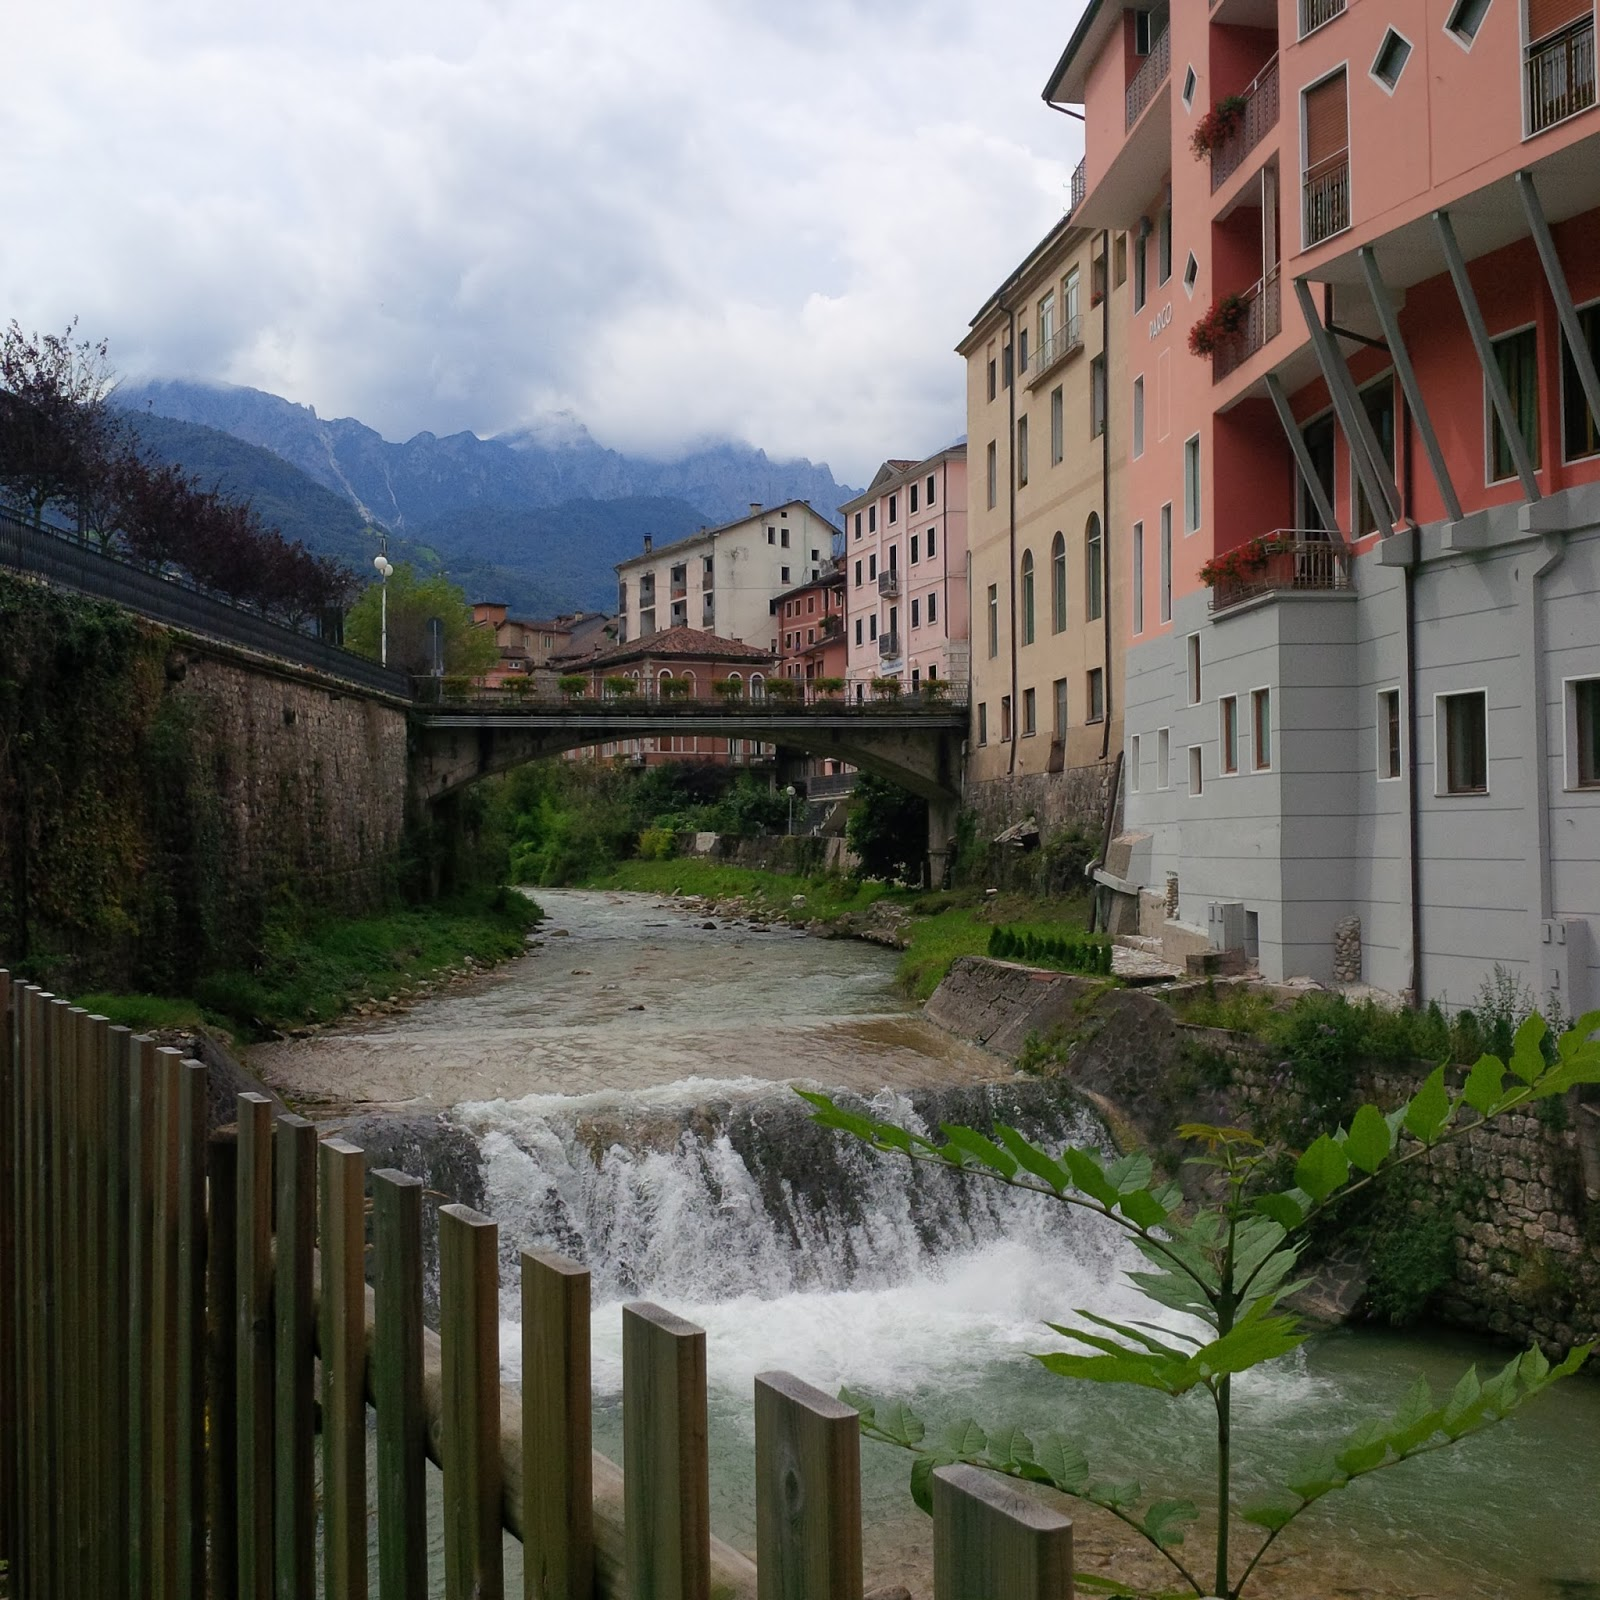 A view of Recoaro Terme, Veneto, Italy - www.rossiwrites.com